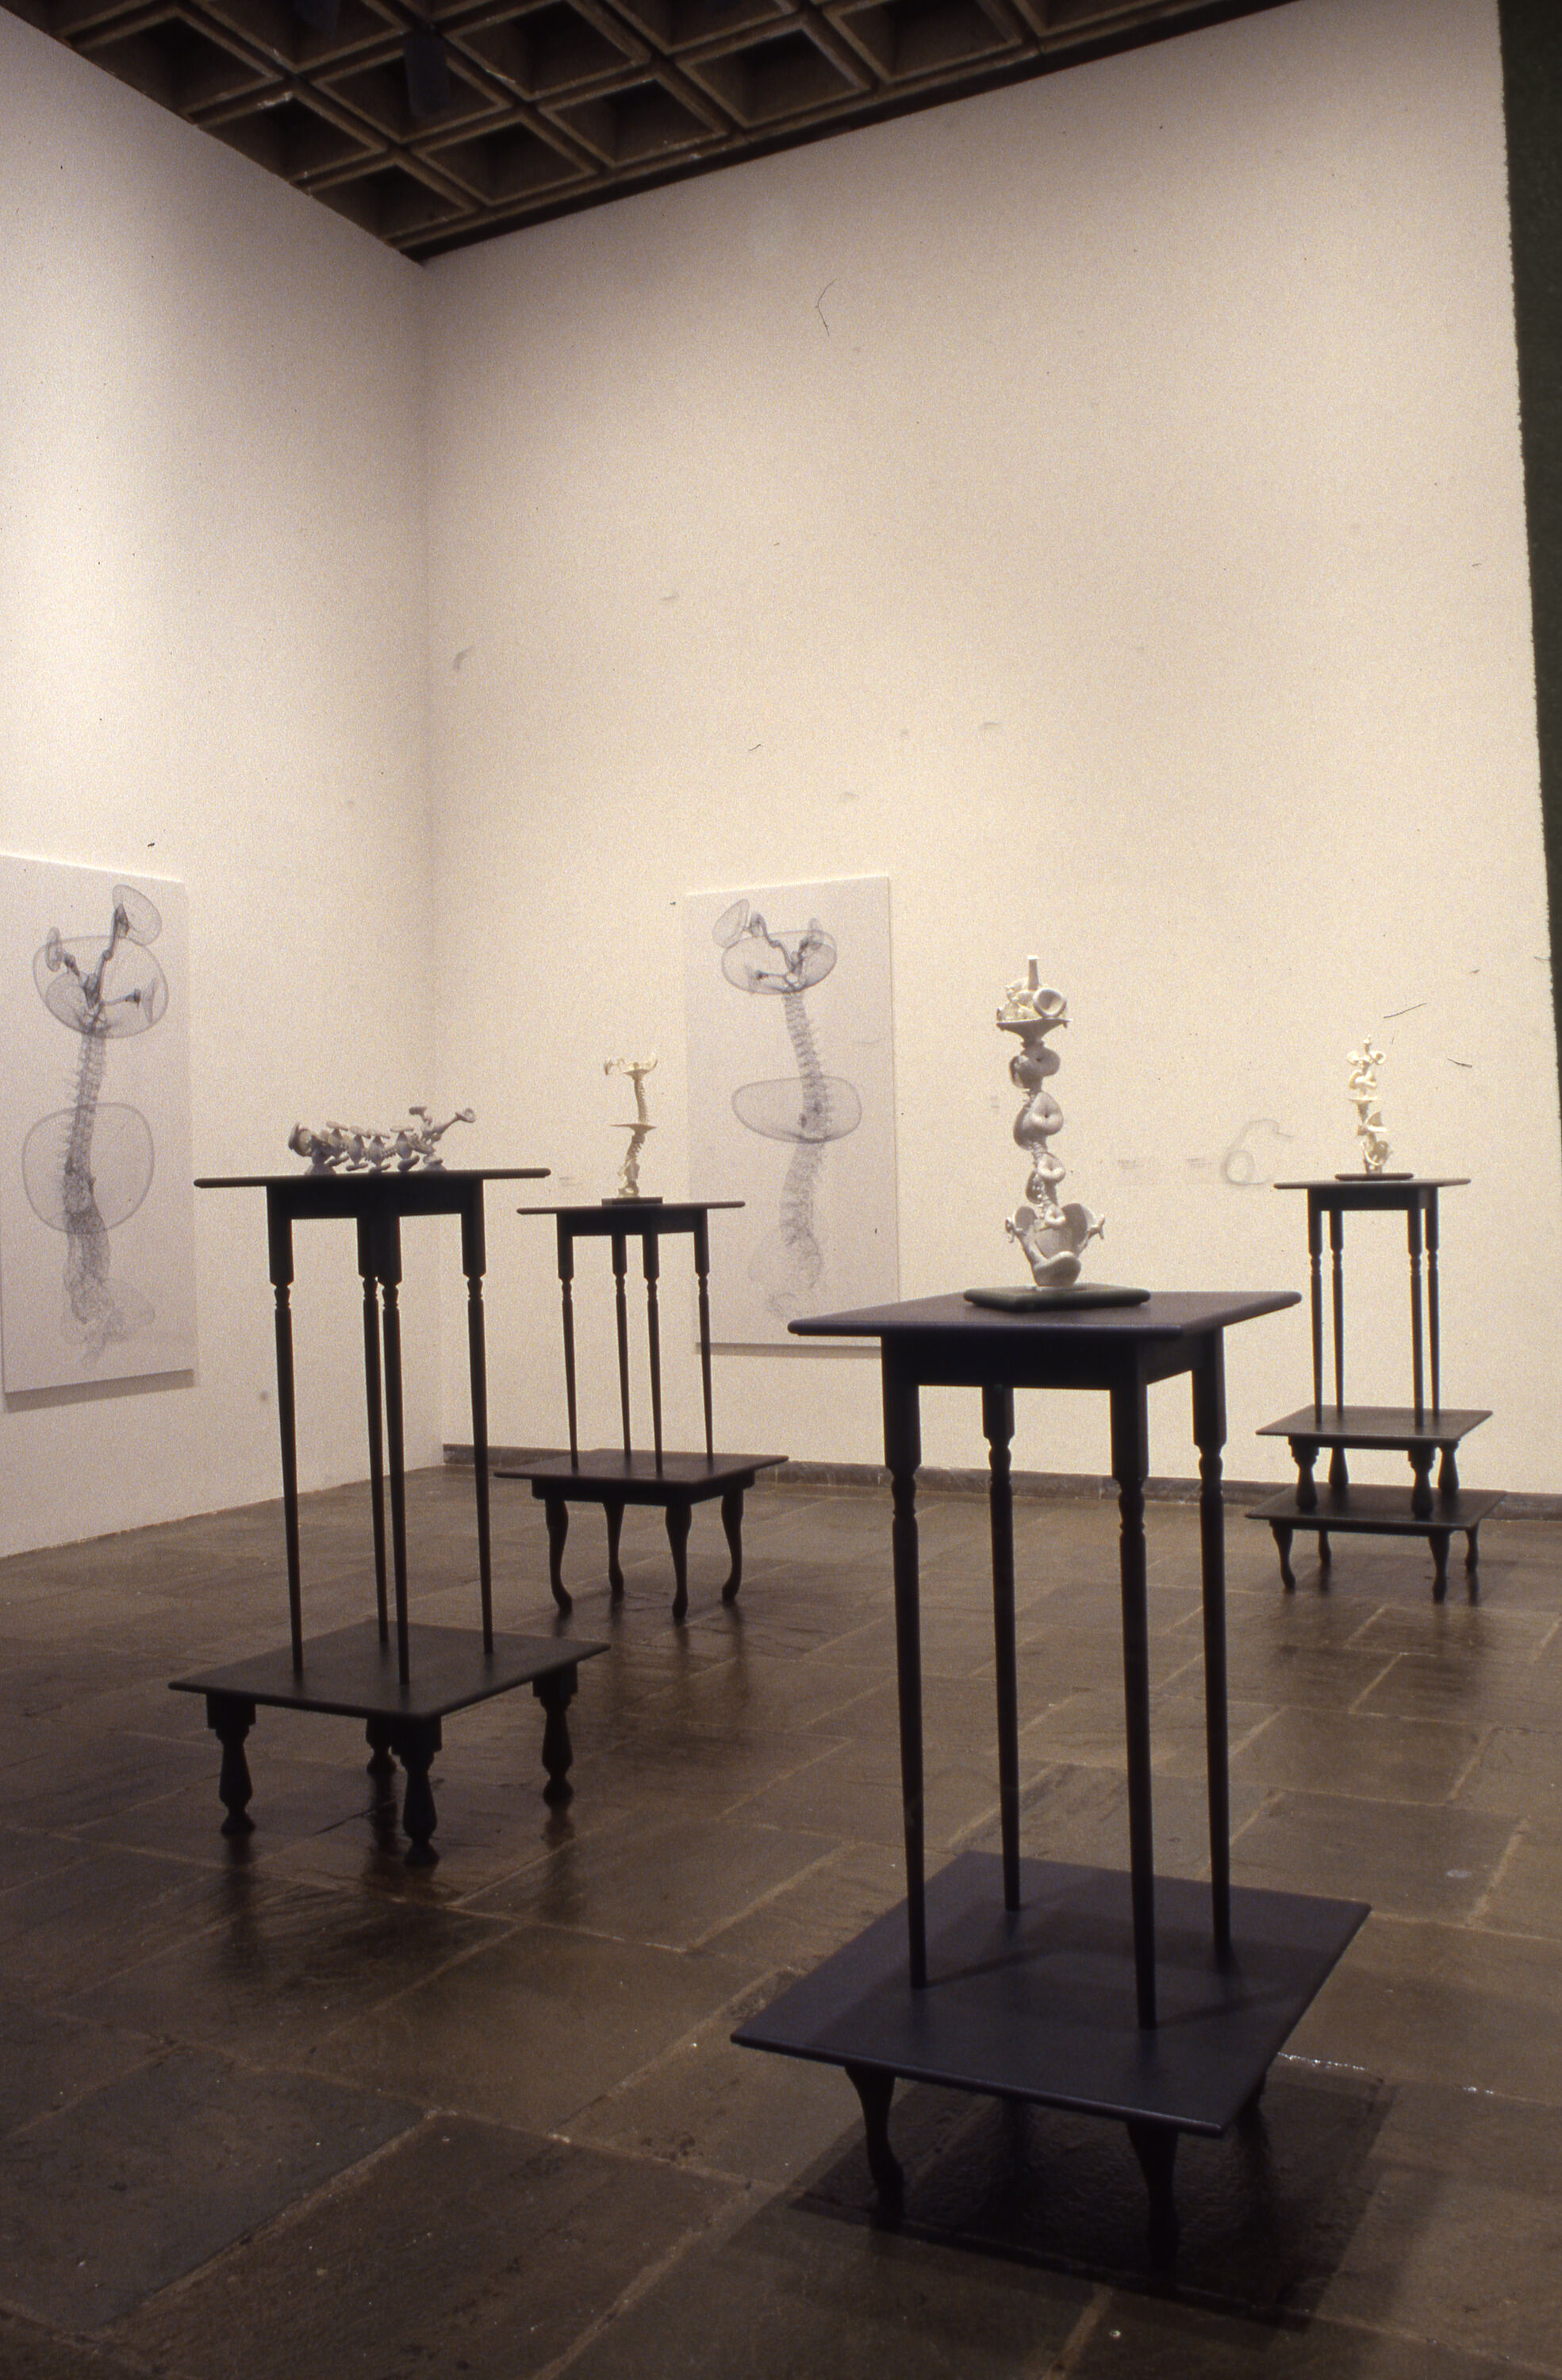 A gallery with white sculptures displayed on top of tall black pedestals.